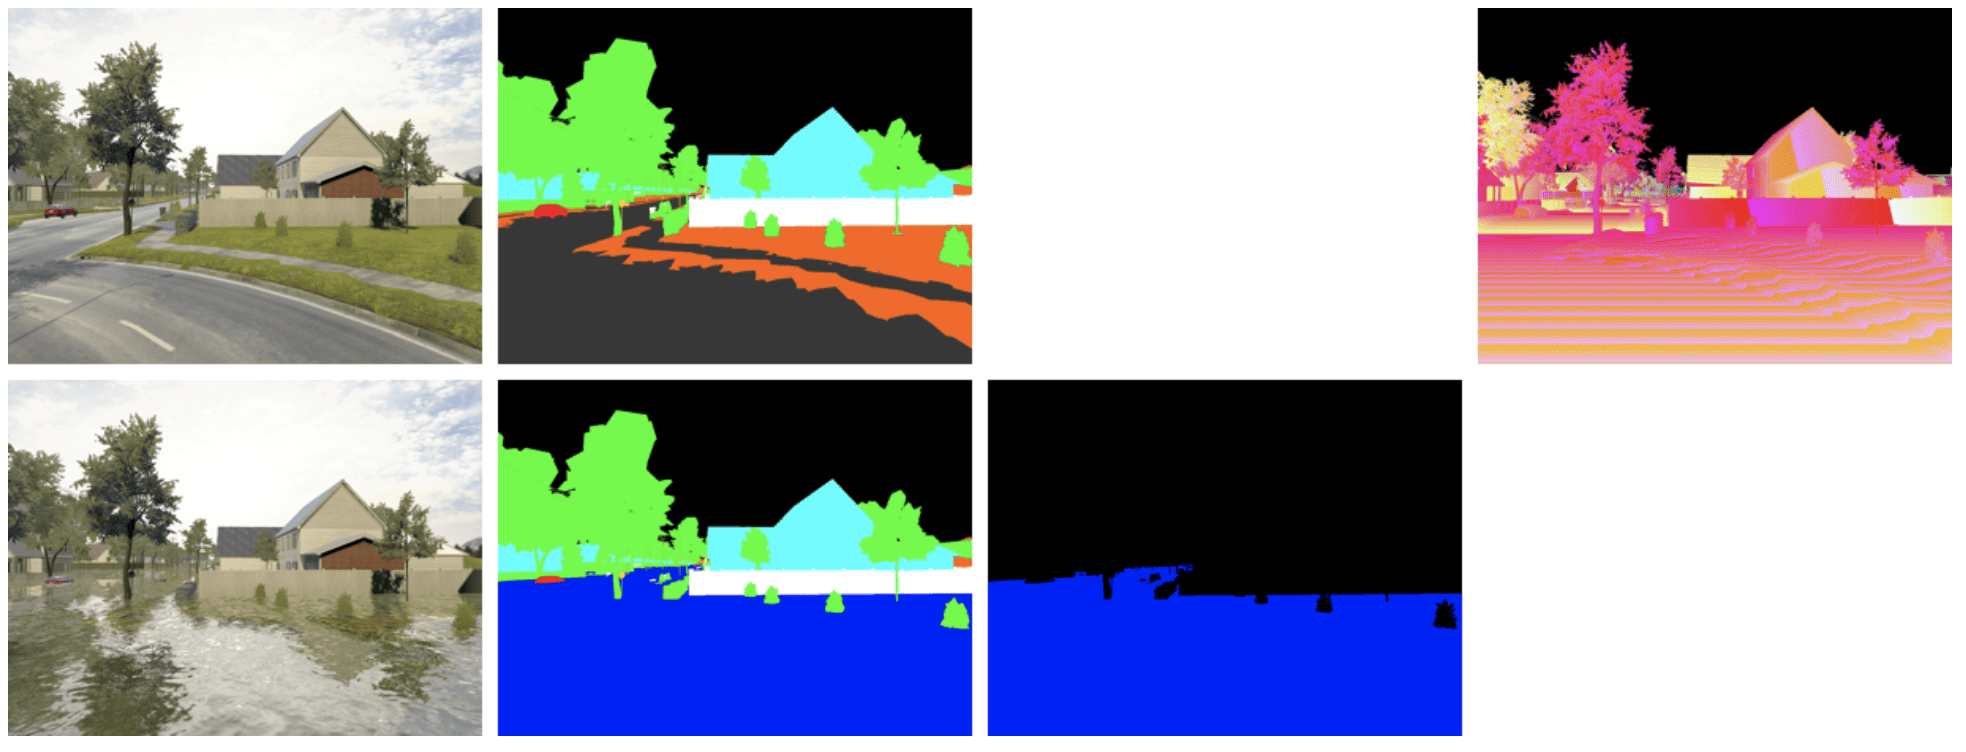 Sample data obtained at one spot for one camera position in our virtual world. The top row shows the modalities of the 'before' flood image: RGB image of the scene, depth map and segmentation map; and the bottom row shows those obtained in the 'after' configuration: RGB image, segmentation map and binary flood mask.